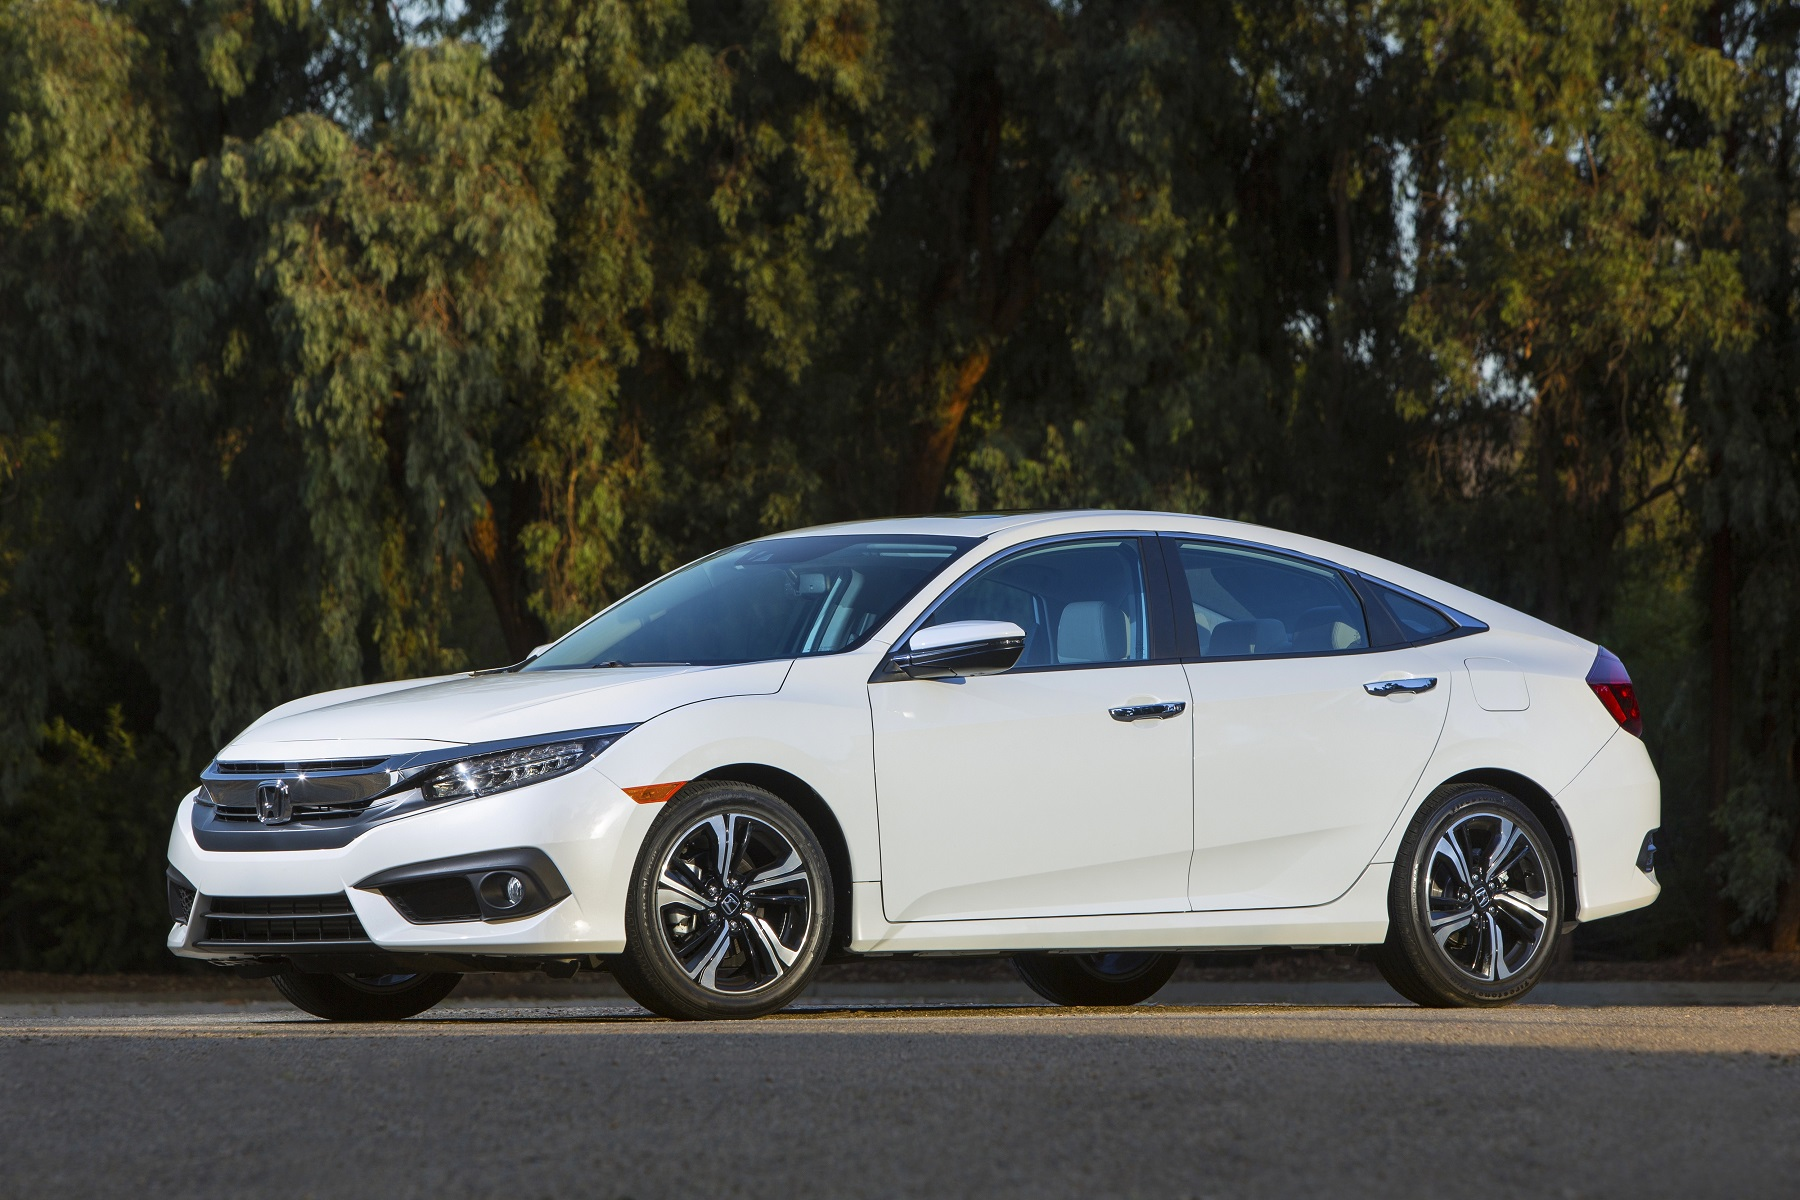 2016 Honda Civic All New Sporty Sophisticated Sedan